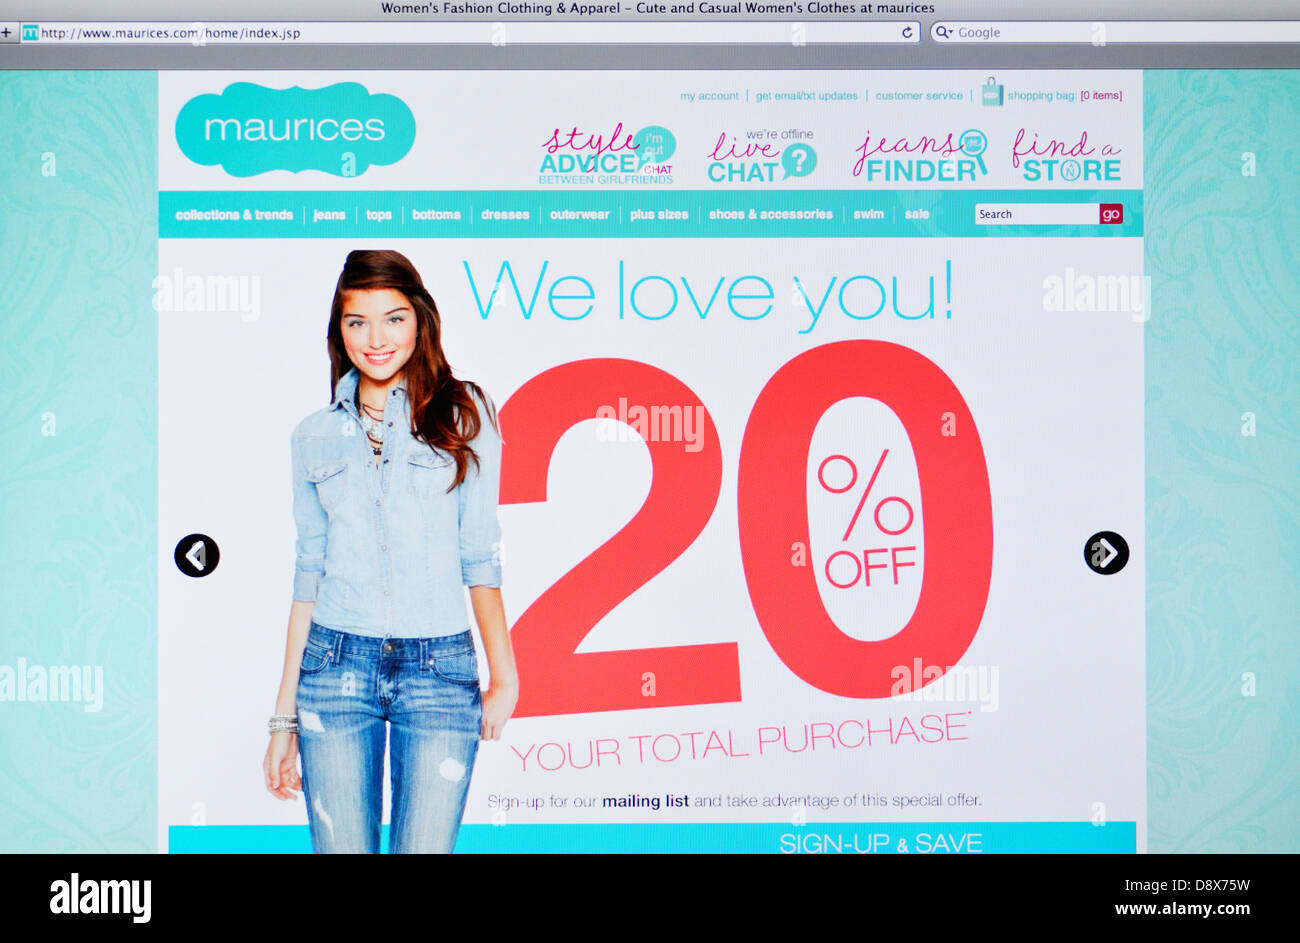 a0cc7ddfa76 Maurices clothing online store Stock Photo  57124757 - Alamy